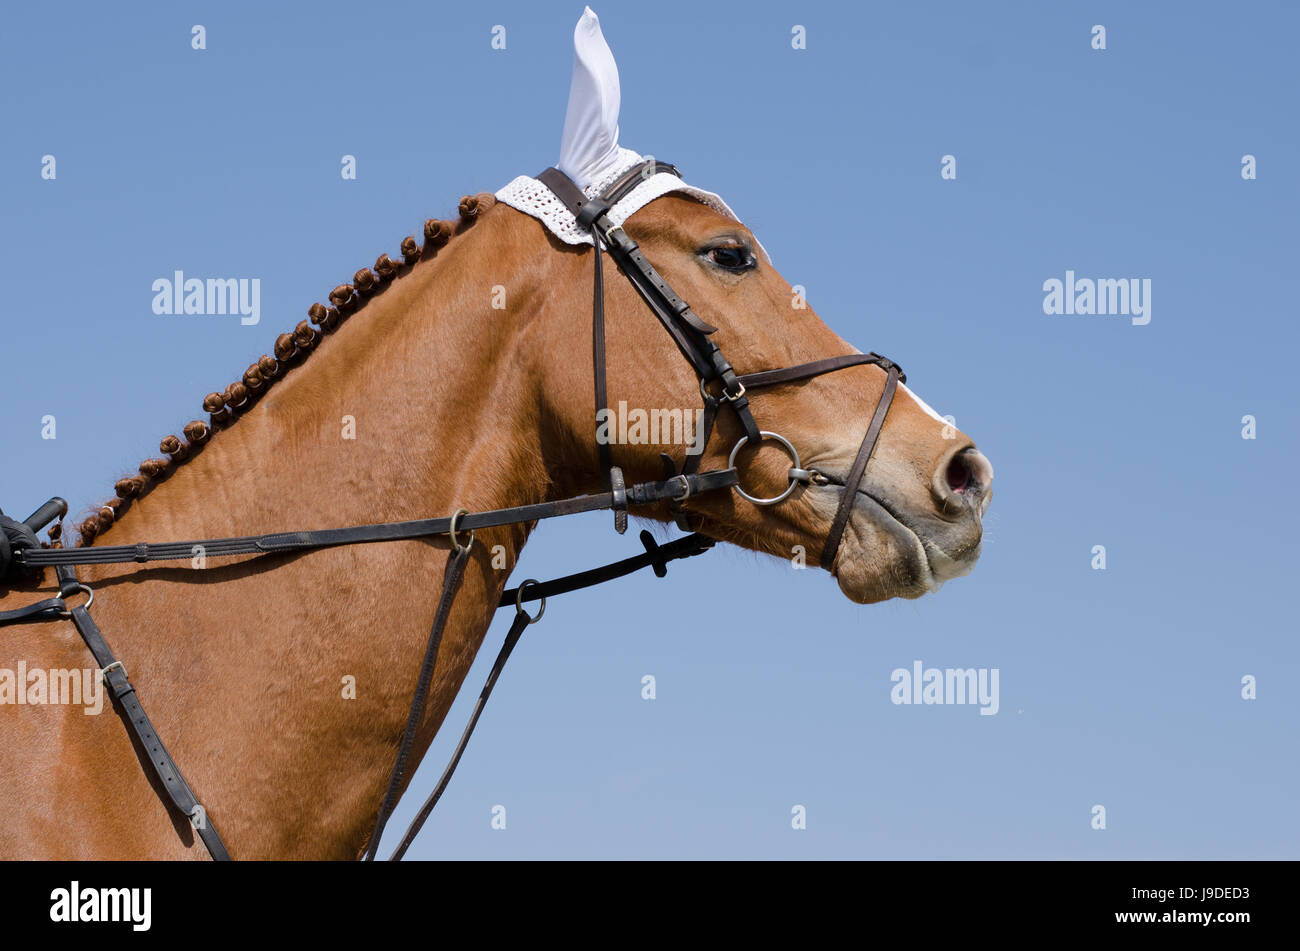 Head-shot of a show jumper horse during training with unidentified rider Stock Photo